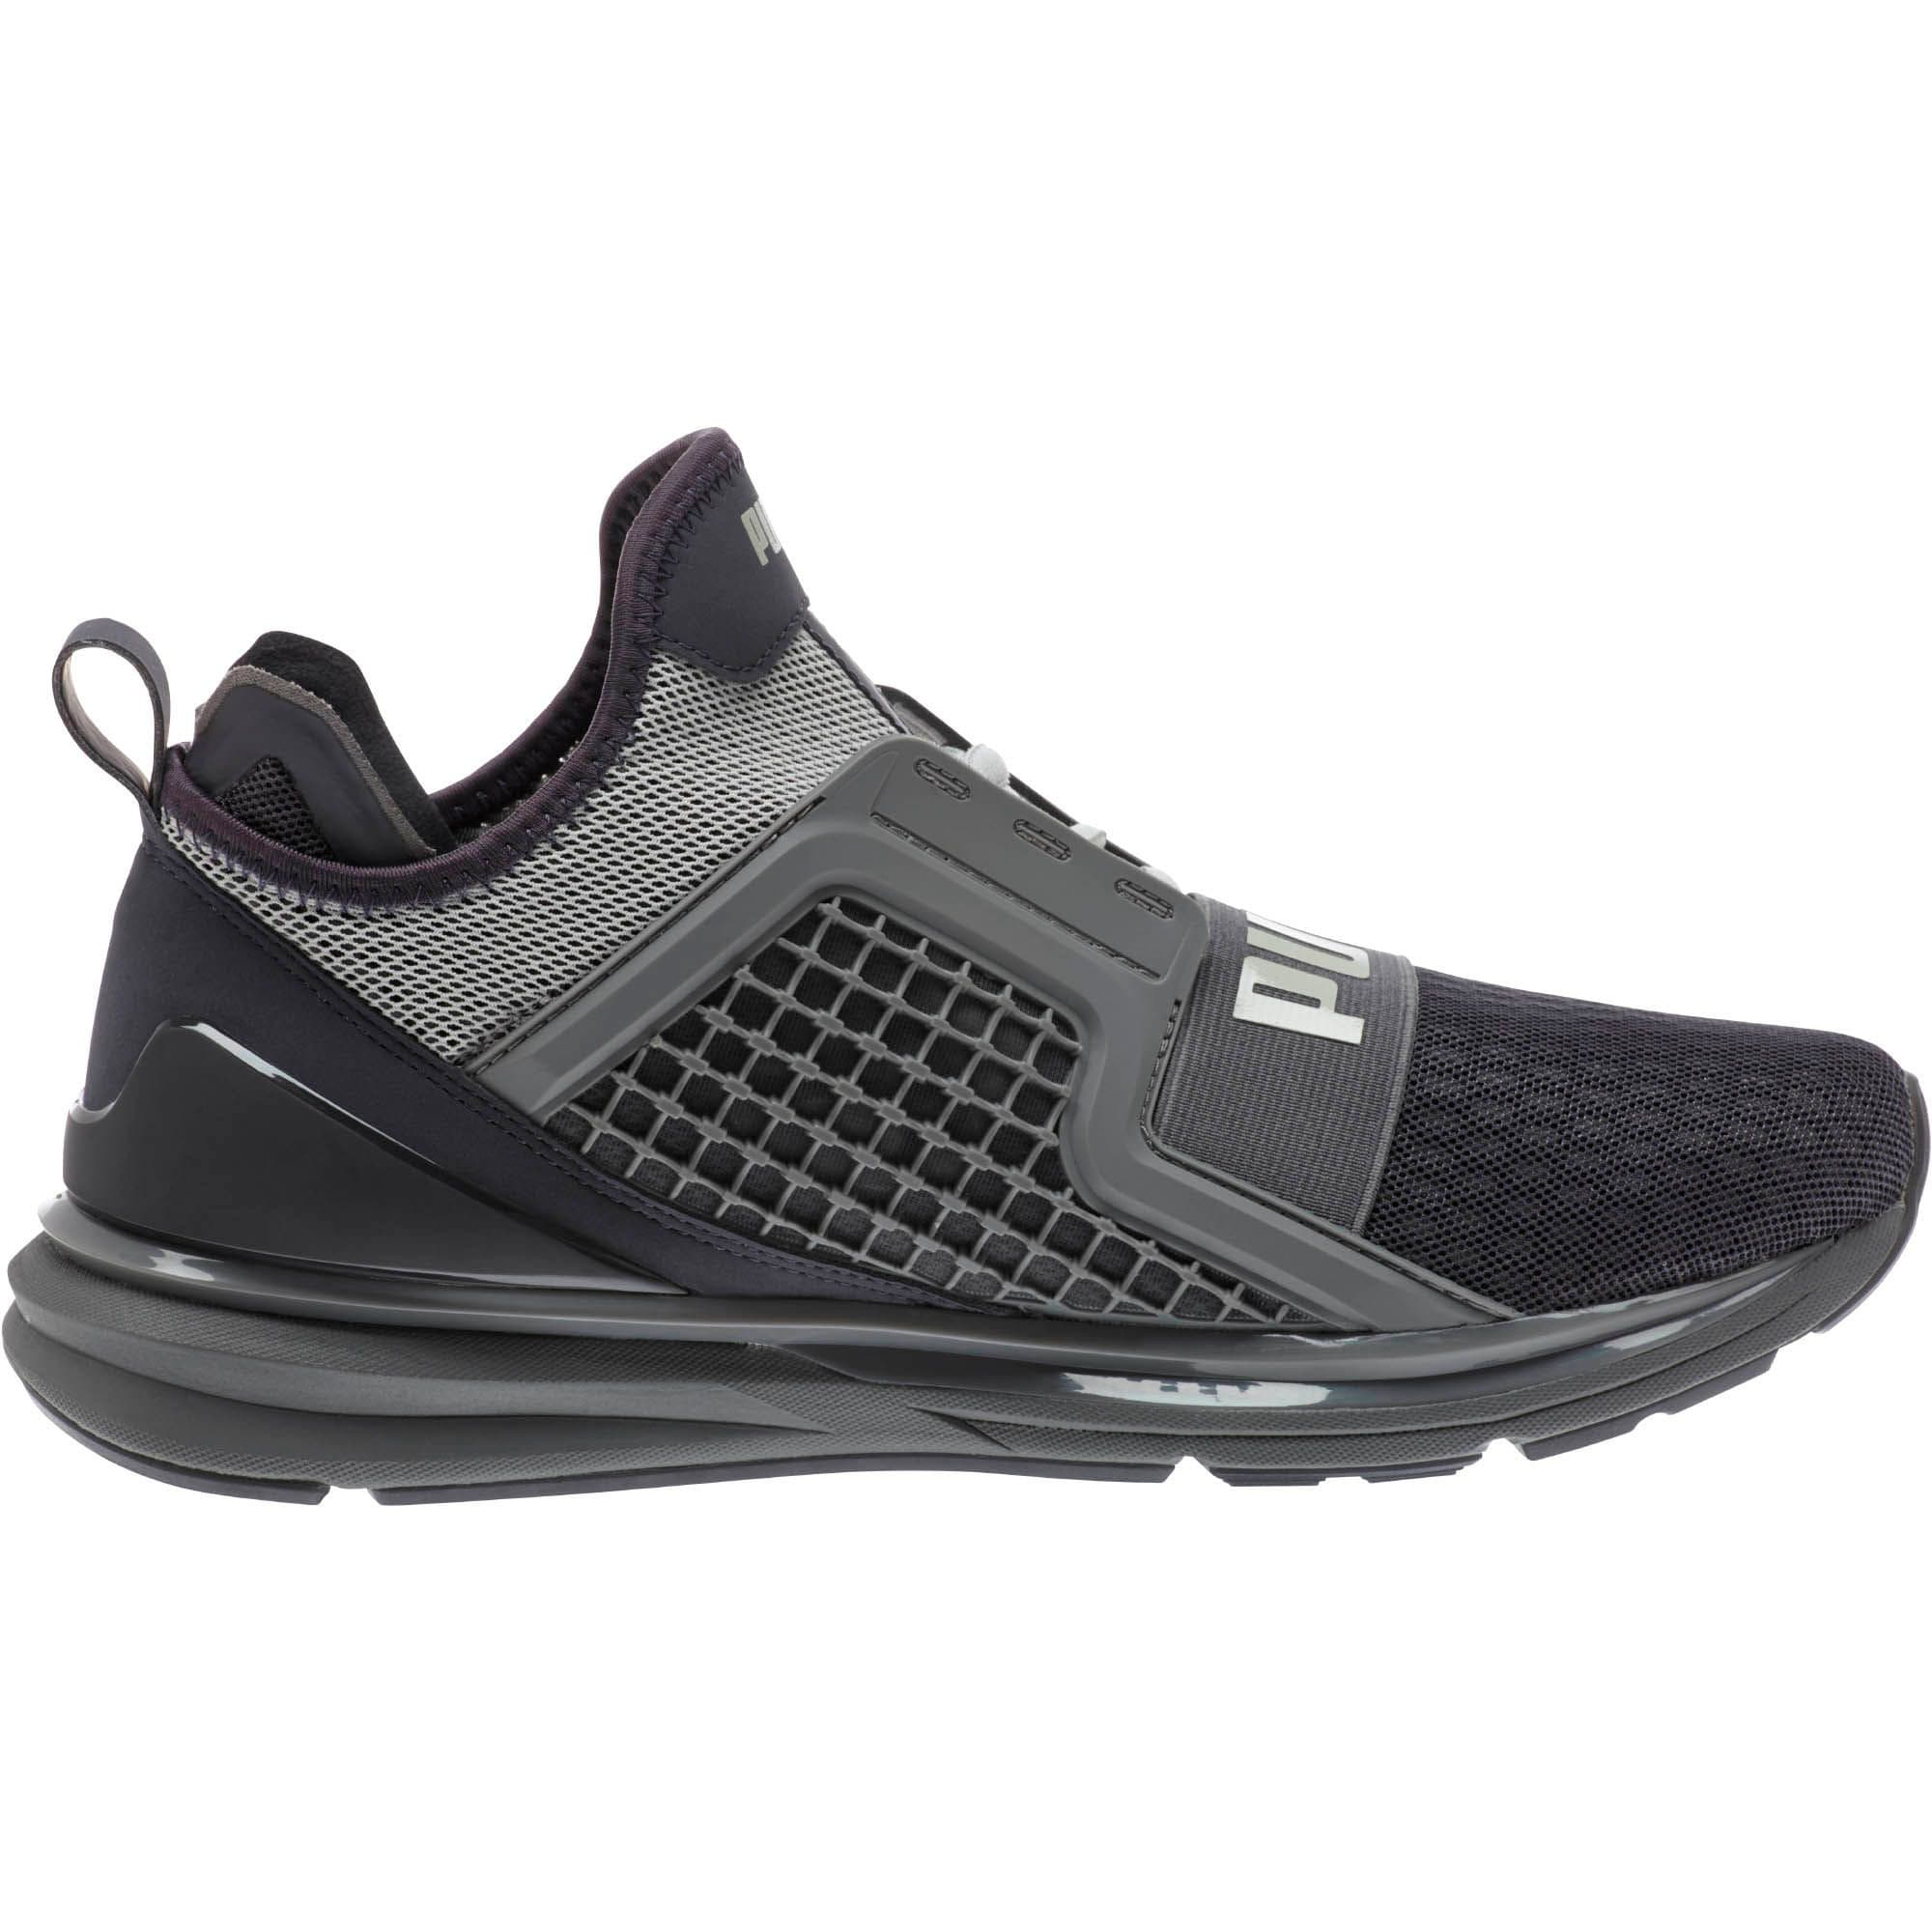 Thumbnail 3 of IGNITE Limitless Men's Running Shoes, Periscope-Gray Violet, medium